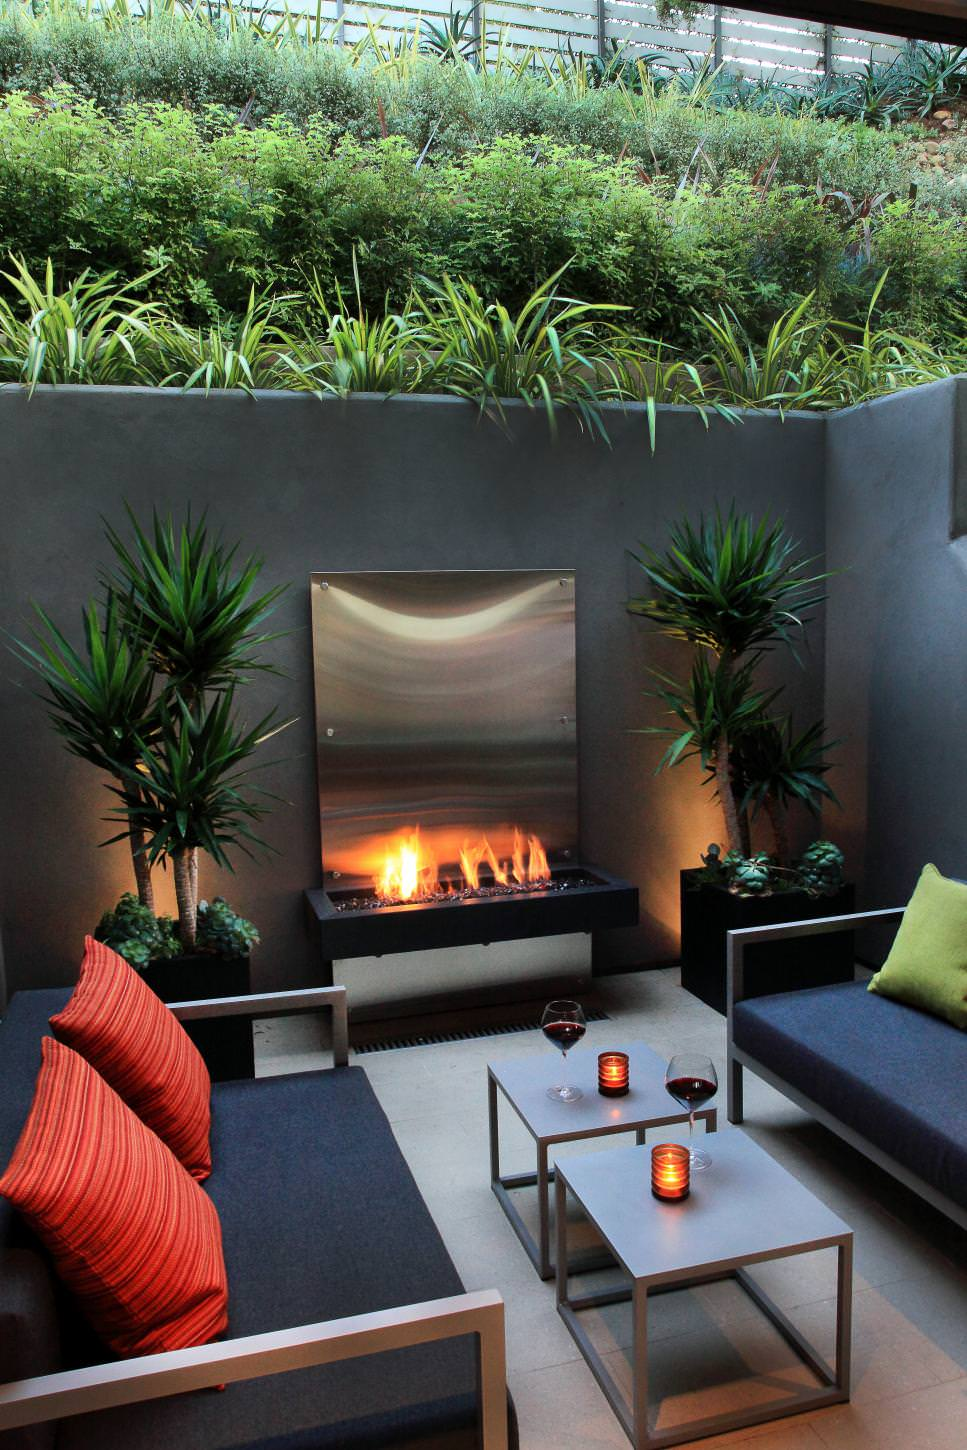 23 concrete wall designs decor ideas design trends for Small outdoor patio areas